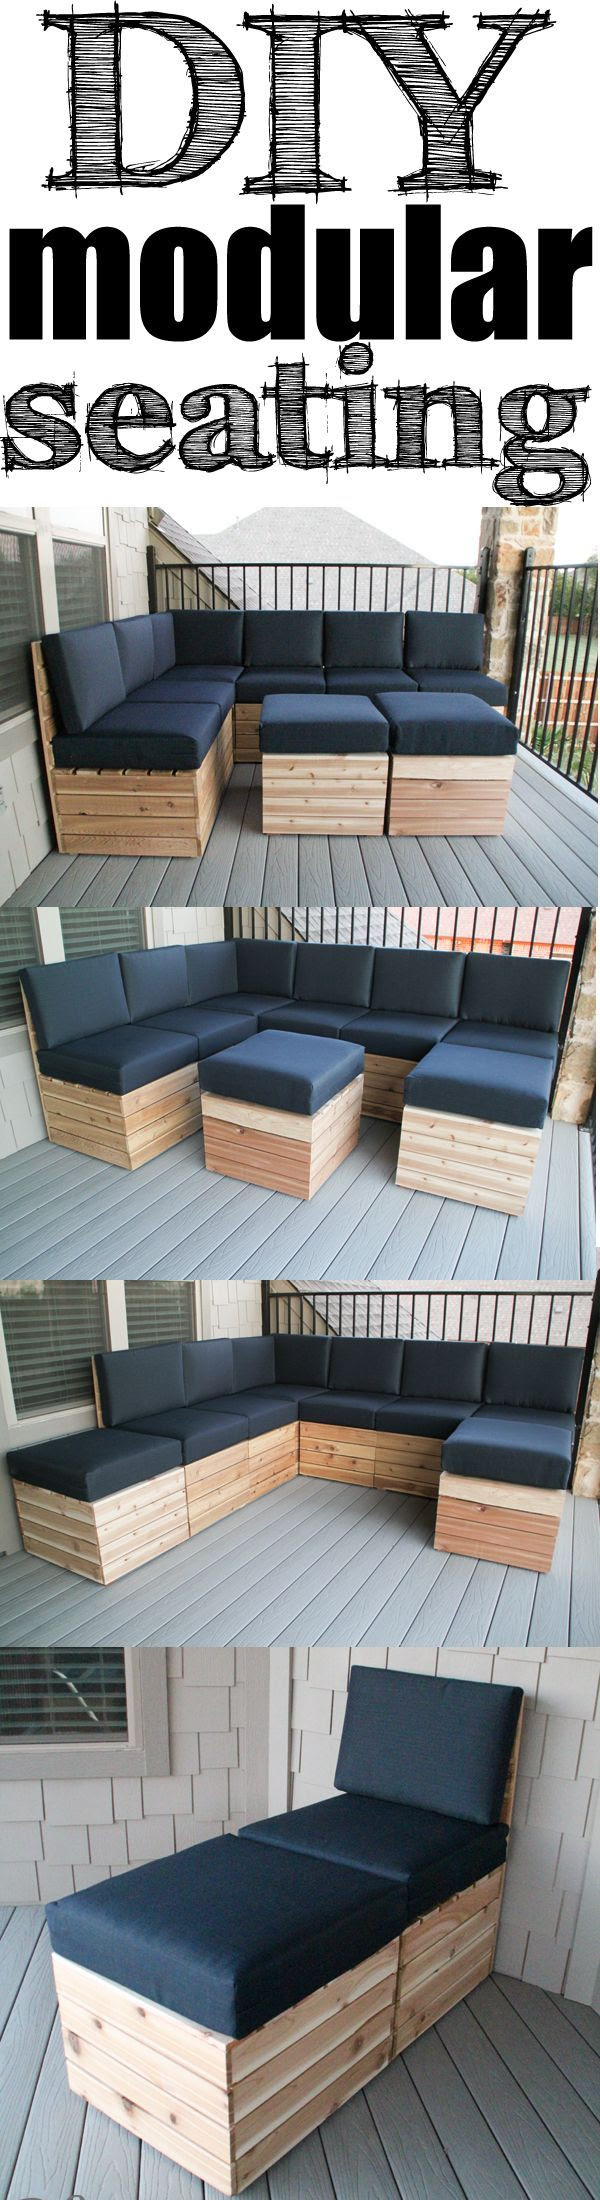 DIY Modular Seating! Easy build and you can build it/arrange it to fit your space! Free Plans!